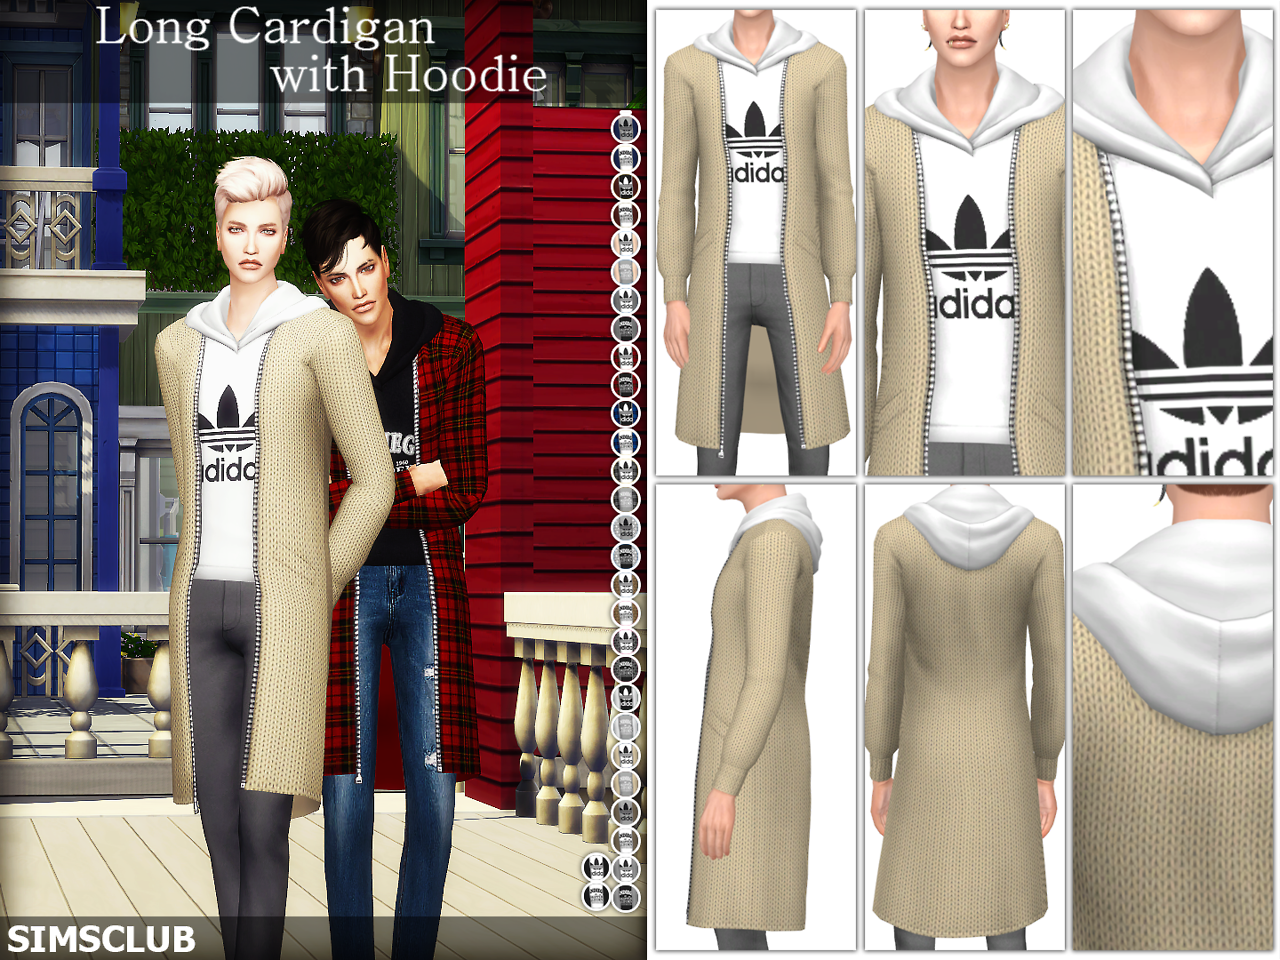 [SIMSCLUB] Long Cardigan with Hoodie by SIMSCLUB